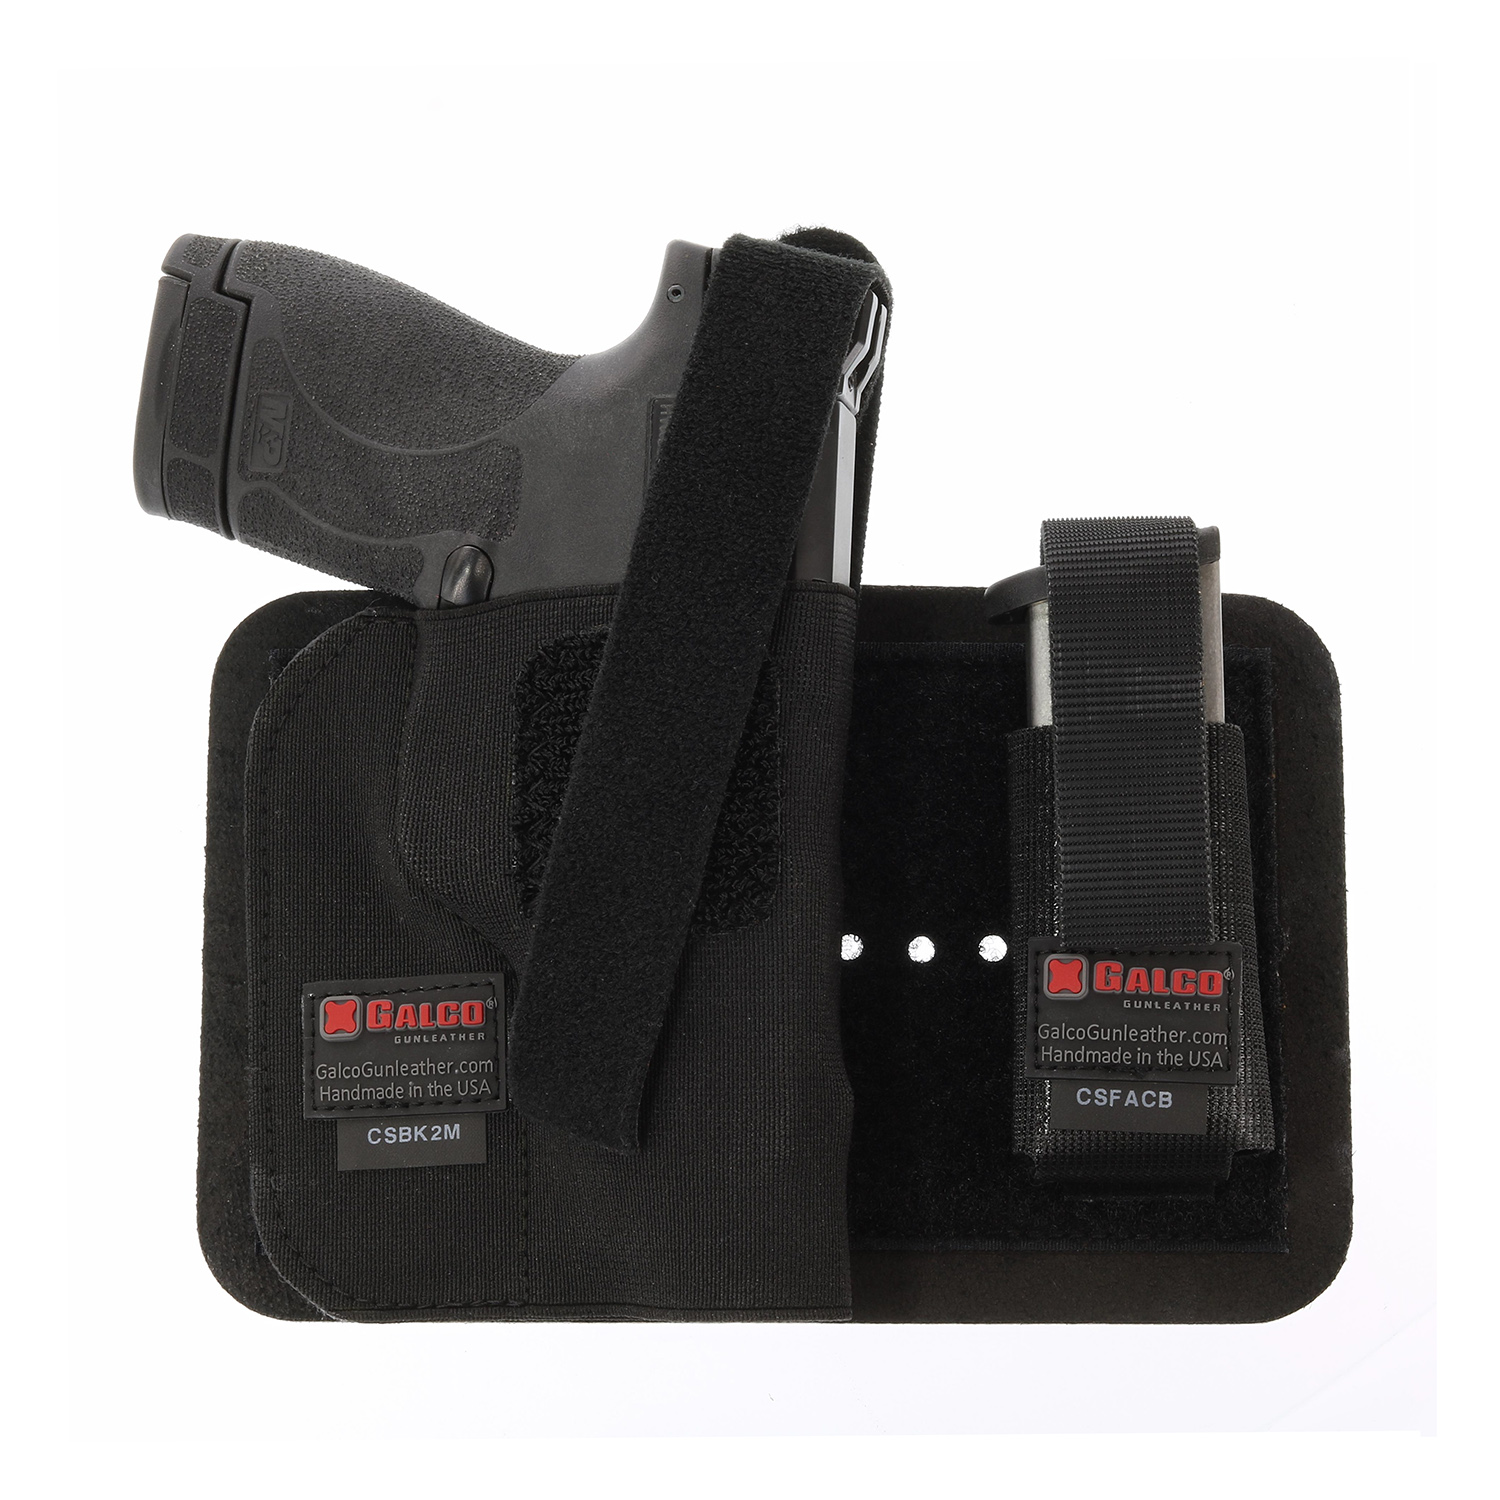 "If you'd prefer to simply use an insert with a different manufacturer's bag, this ""Carrysafe 2.0"" insert may work for you."